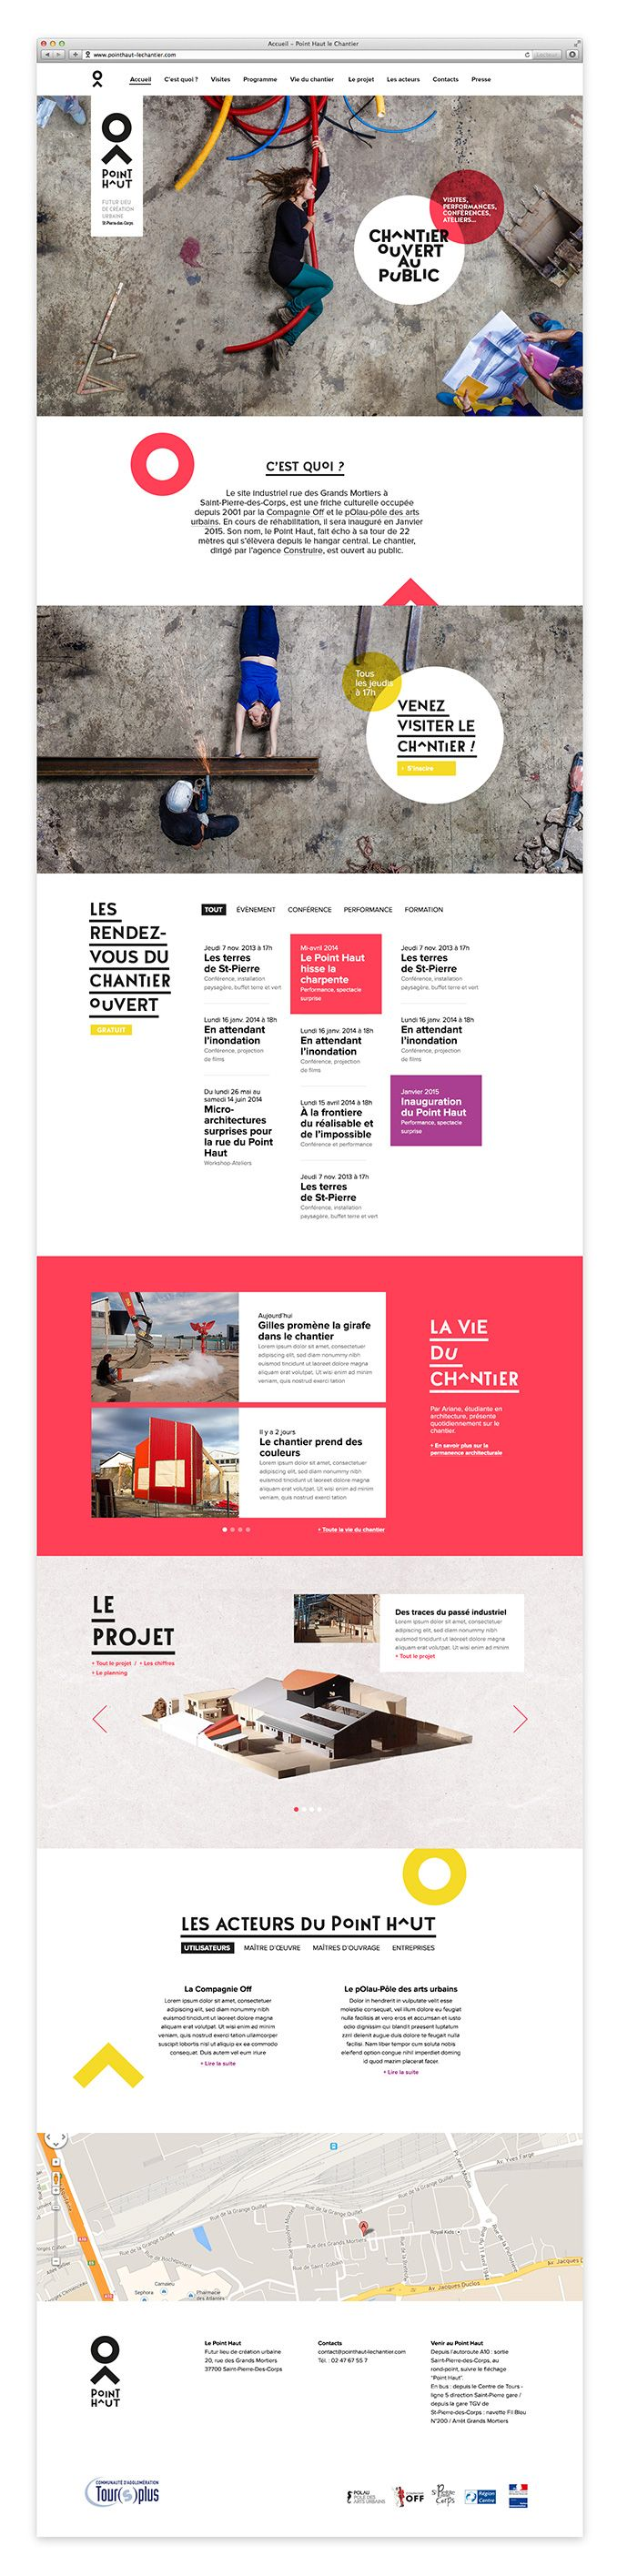 Webdesign du site du chantier ouvert du Point Haut #webdesign #design #template #website